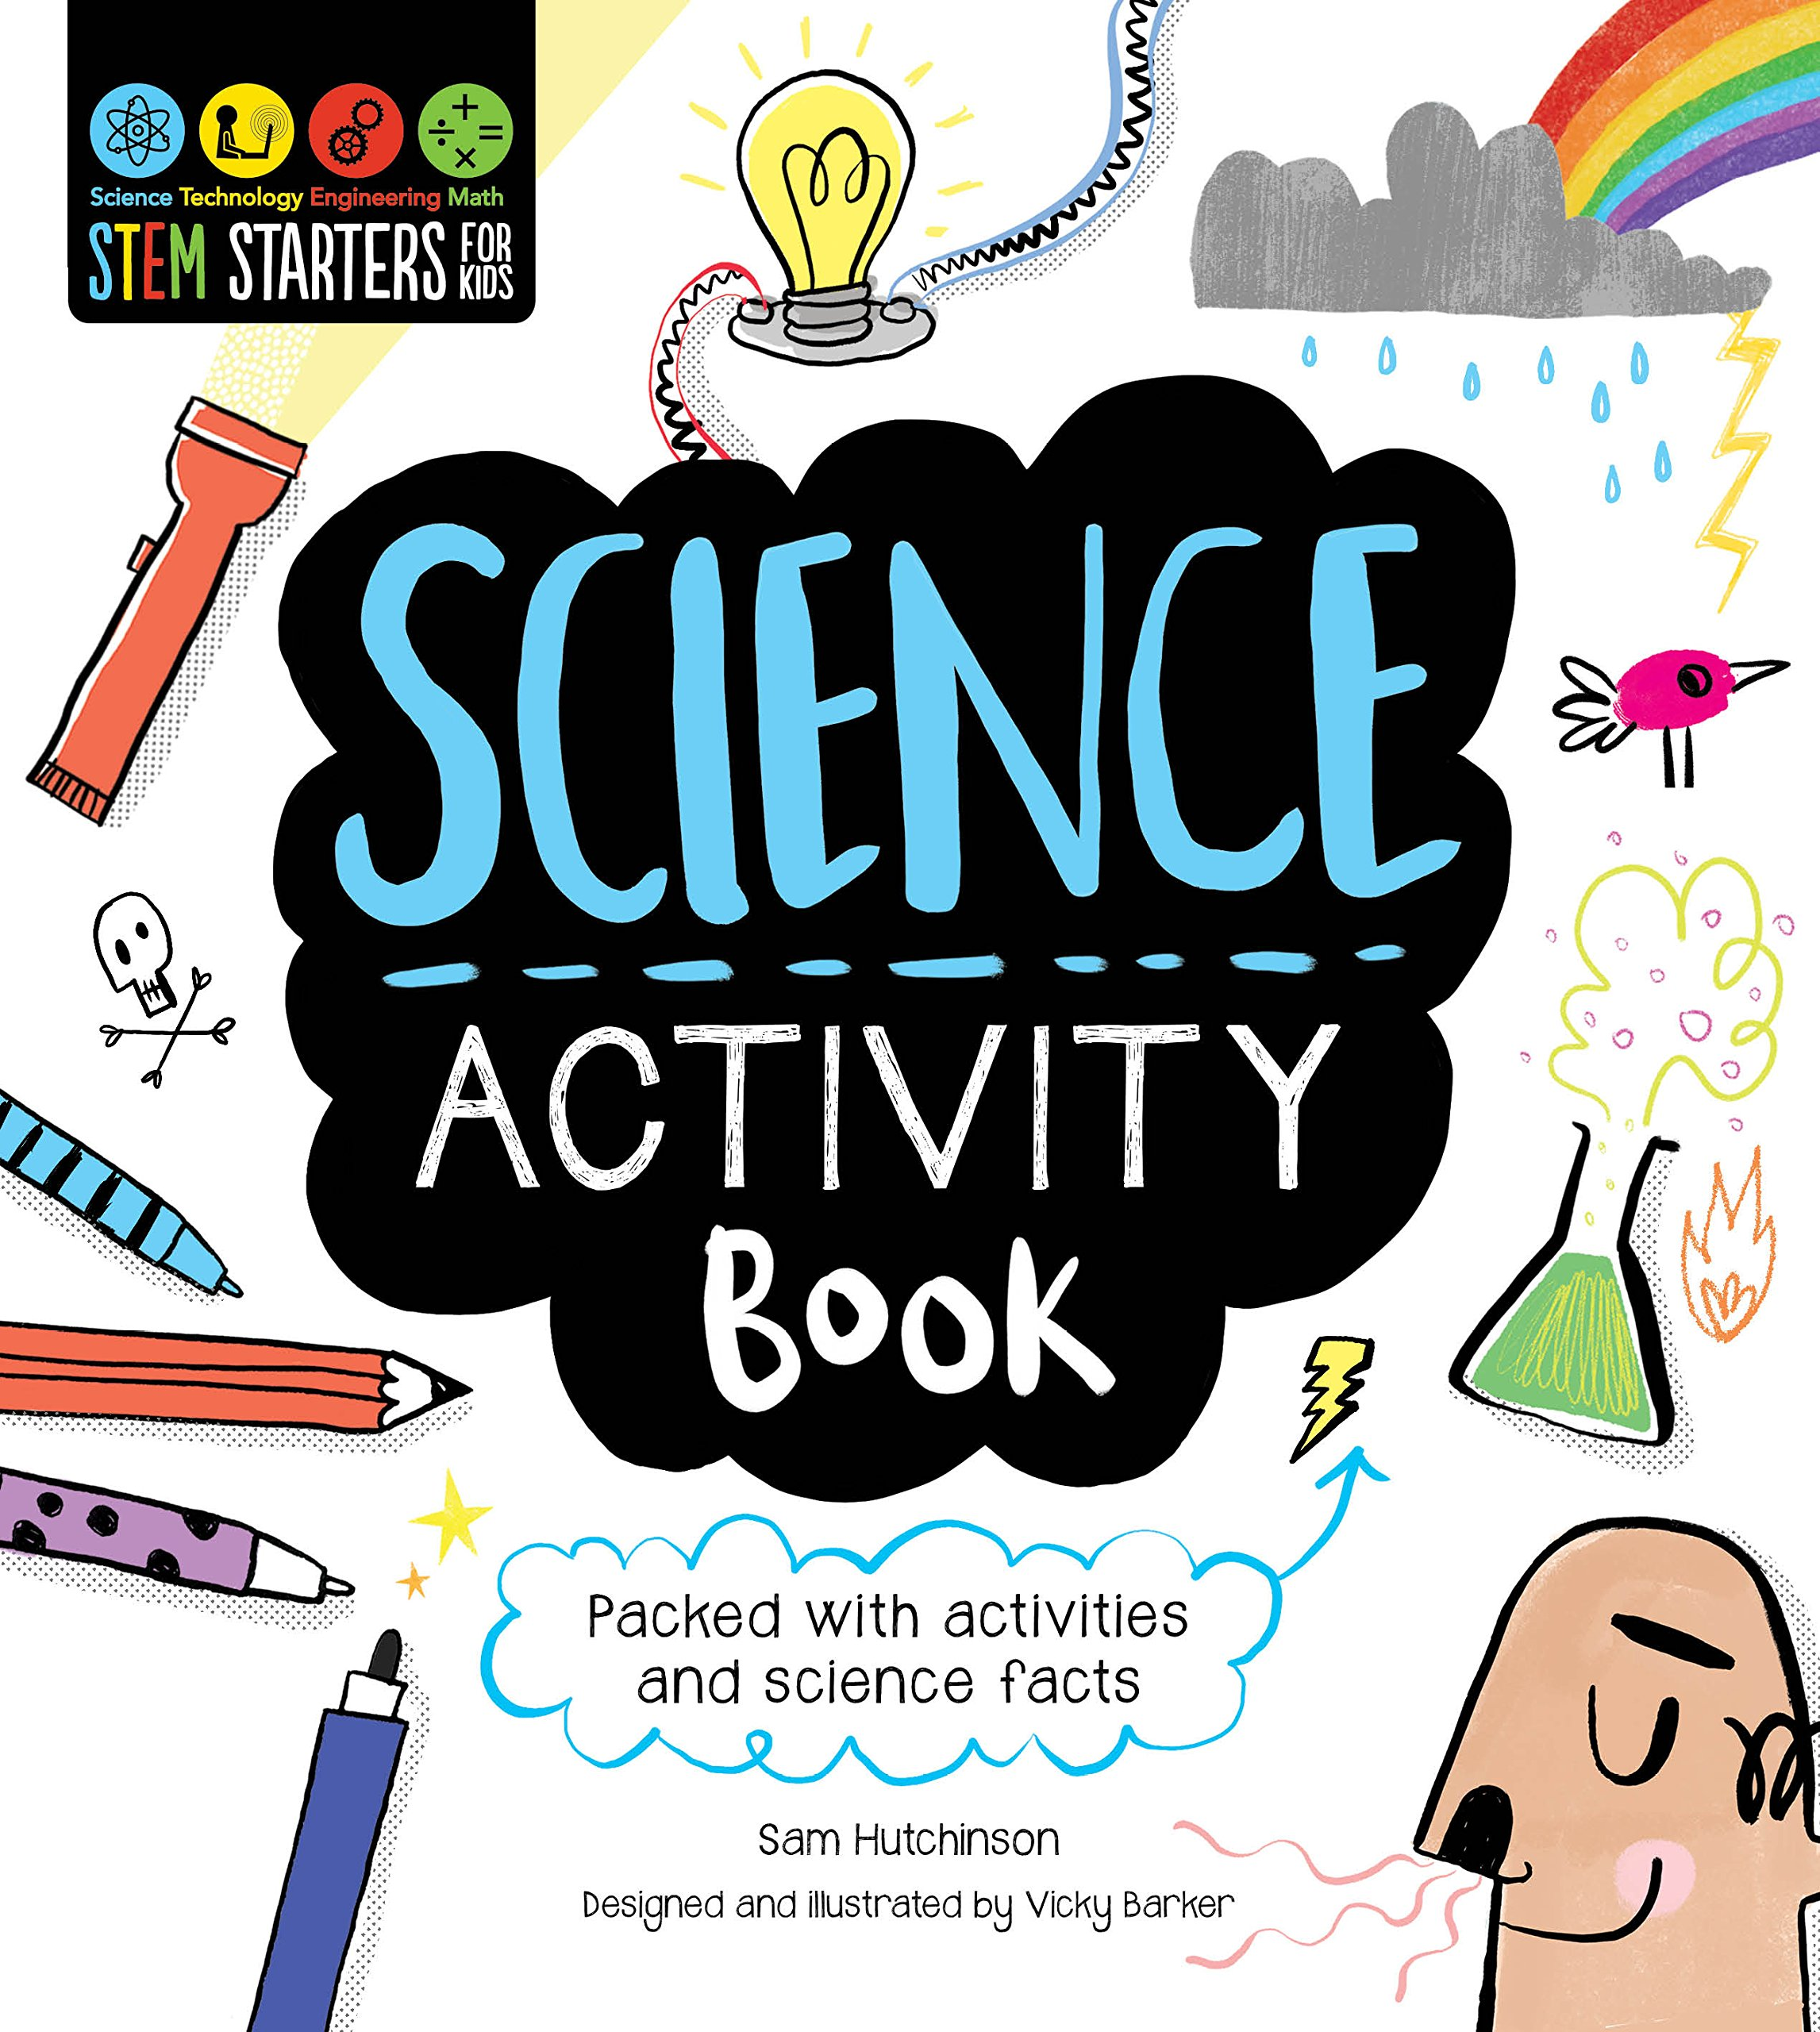 STEM Starters for Kids Science Activity Book: Packed with Activities and Science Facts ebook